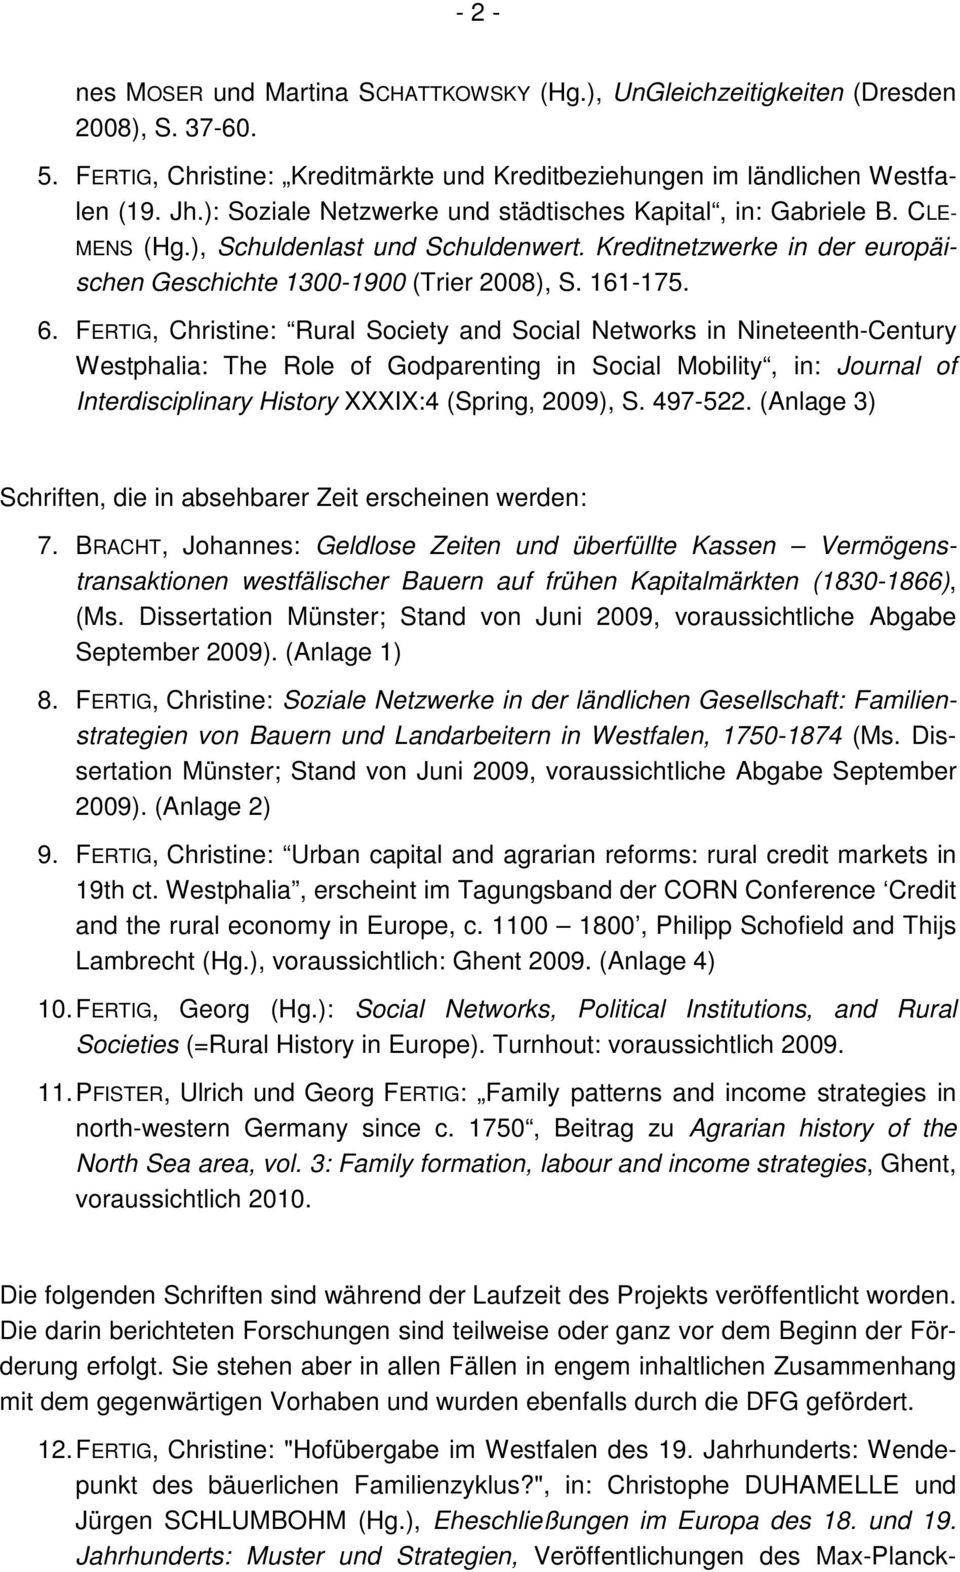 FERTIG, Christine: Rural Society and Social Networks in Nineteenth-Century Westphalia: The Role of Godparenting in Social Mobility, in: Journal of Interdisciplinary History XXXIX:4 (Spring, 2009), S.